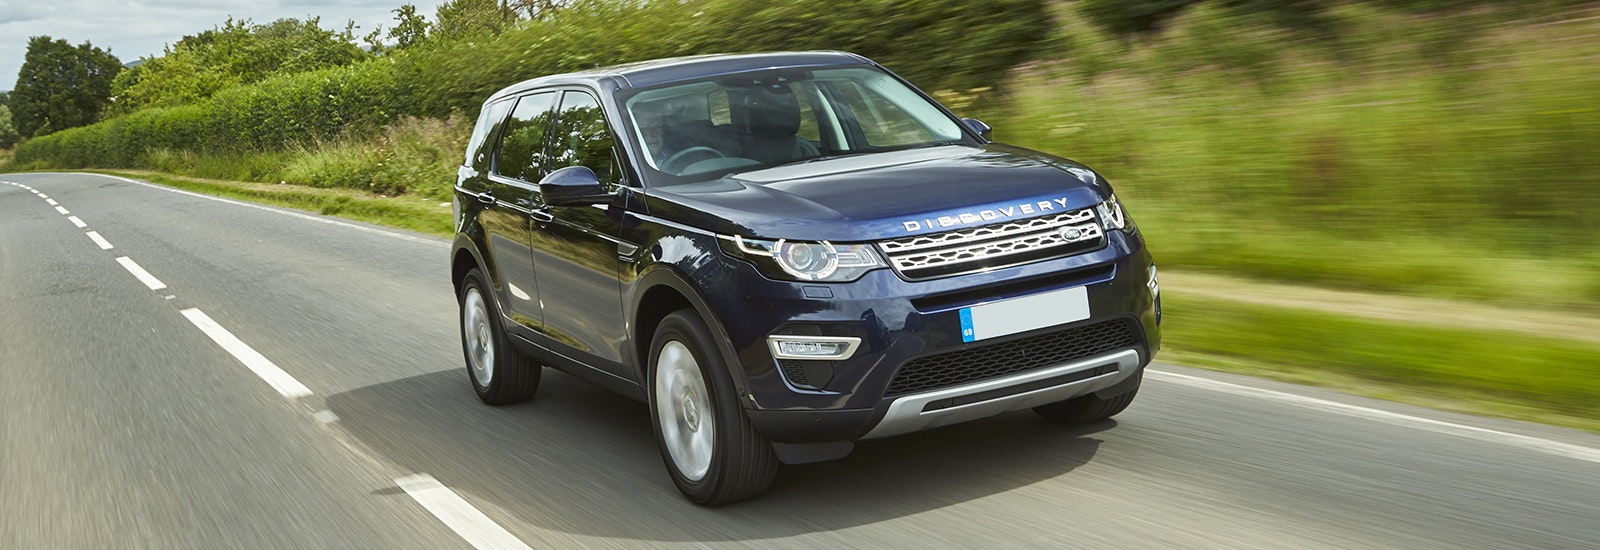 Blue Land Rover Discovery Sport driving, viewed from the front